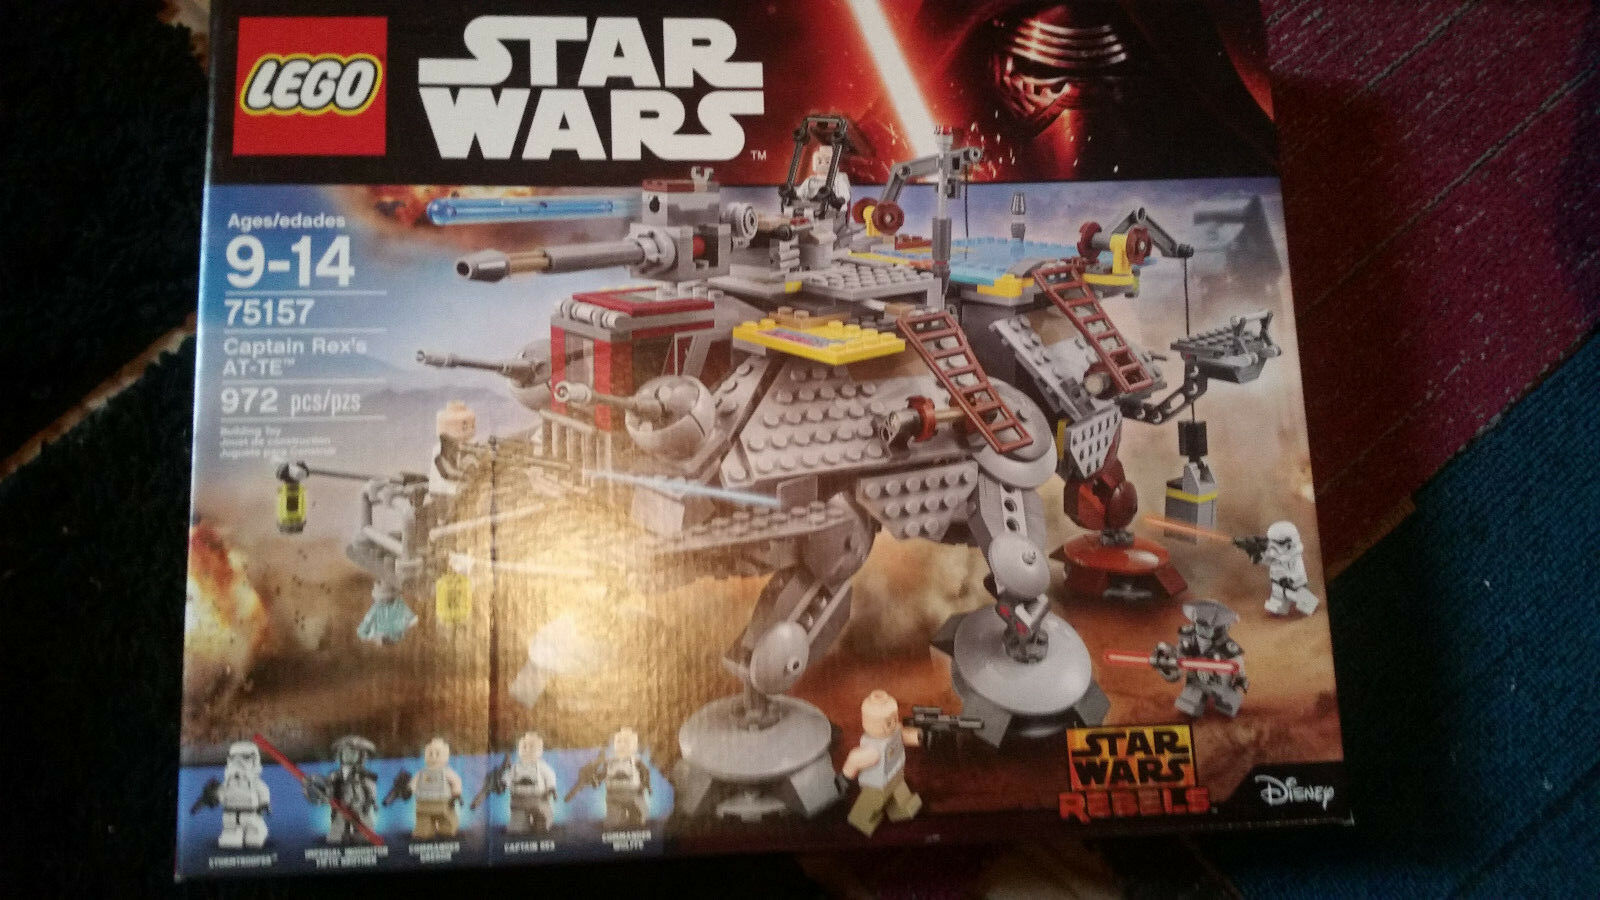 Lego Star Wars Captain Rexs AT-TE (75157) new in Box